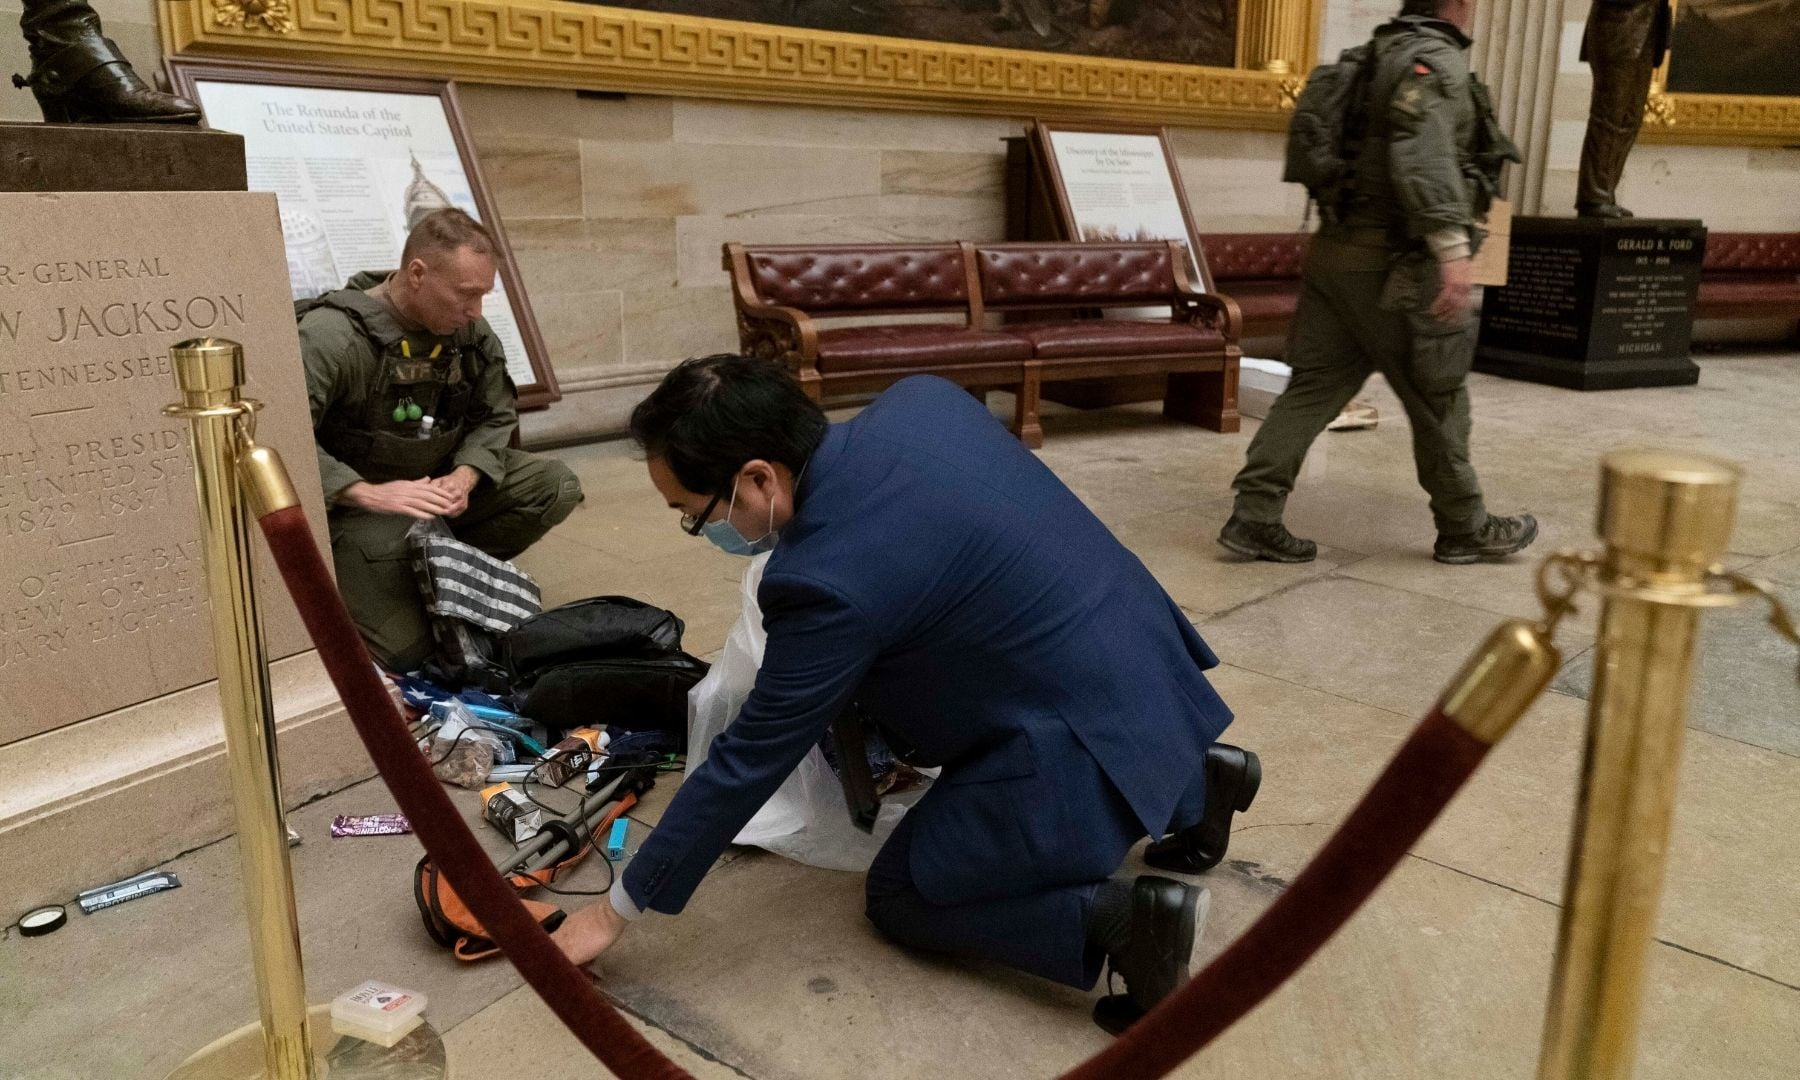 Rep. Andy Kim, D-N.J., helps ATF police officers clean up debris and personal belongings strewn across the floor of the Rotunda in the early morning hours of Thursday. — AP